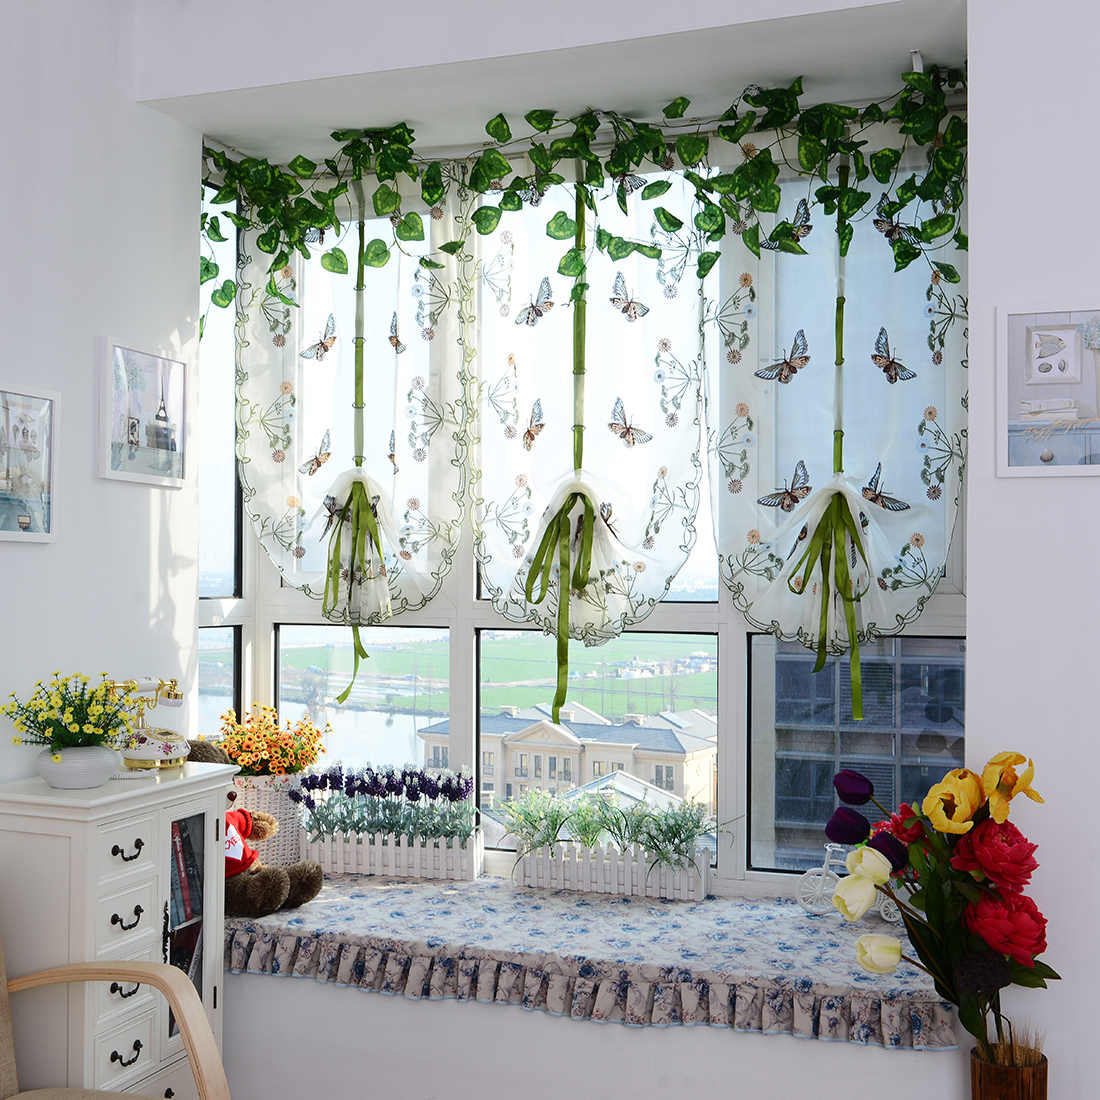 Short Curtain Tulle Butterfly For Kitchen Embroidered Window Valance Window Curtain Sheer Curtains For Living Room 80X100cm